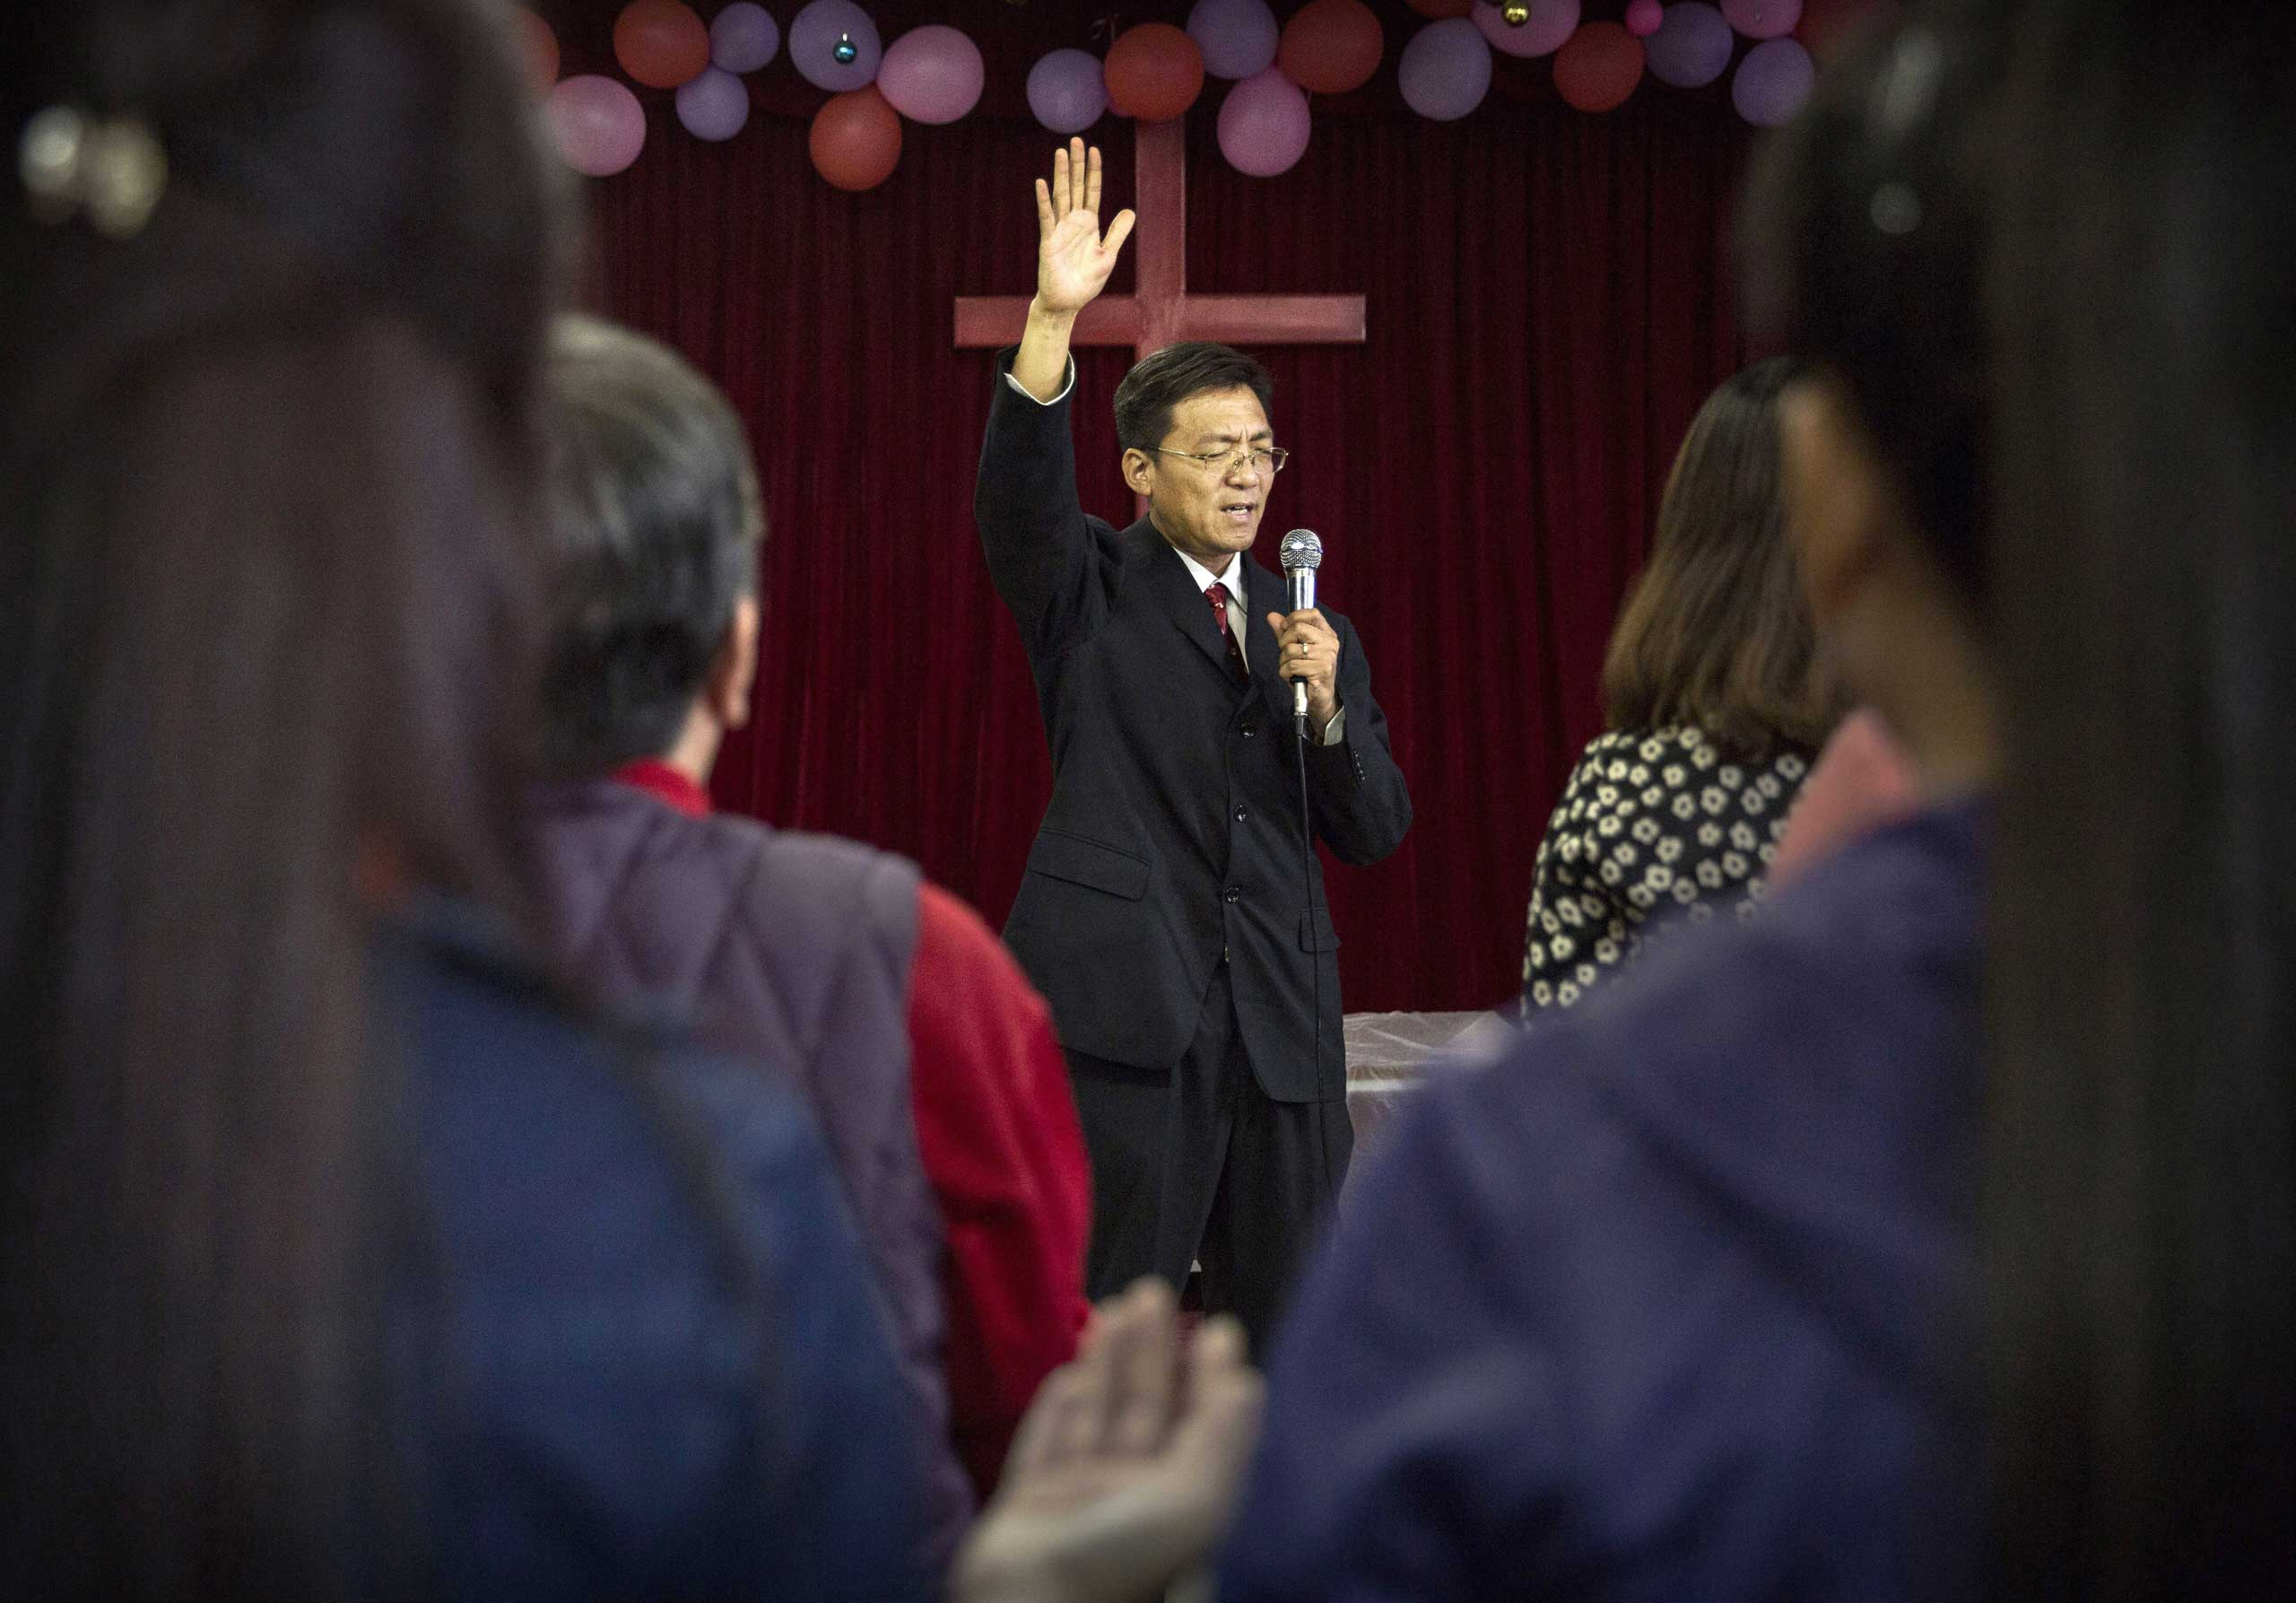 A Chinese Christian pastor leads prayers during a service at an underground independent Protestant Church on Oct. 12, 2014 in Beijing.